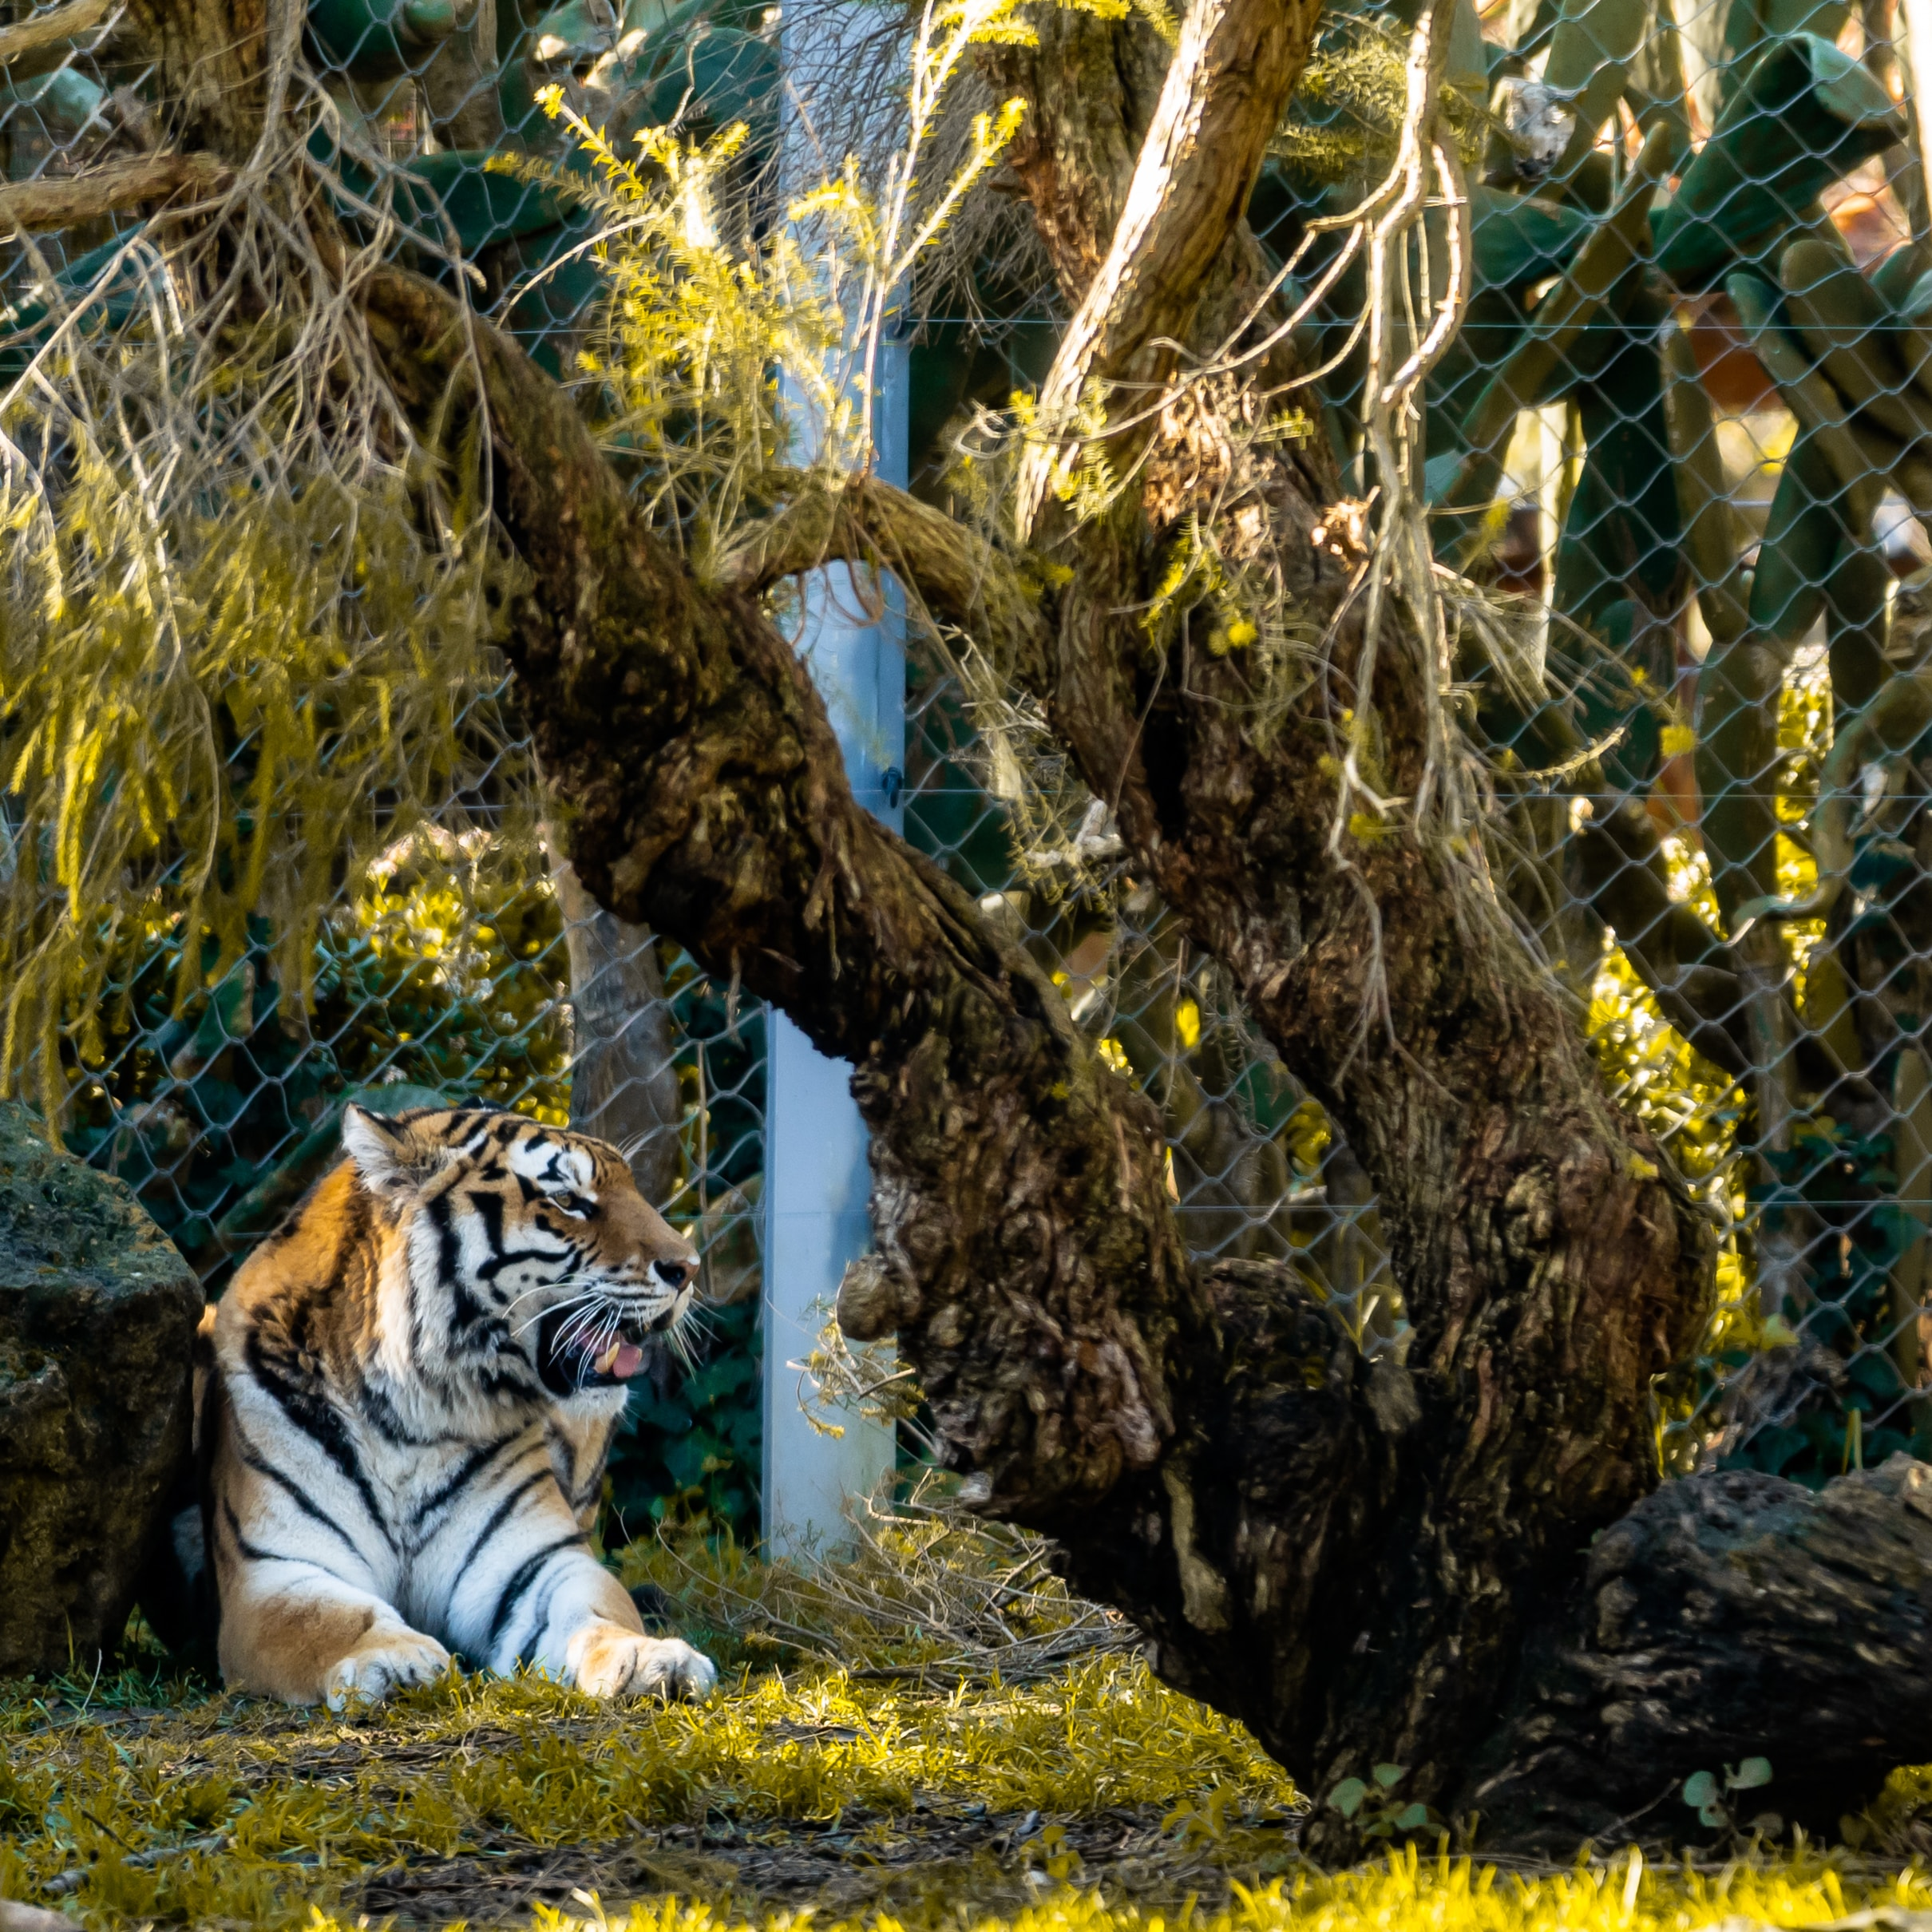 135278 download wallpaper Animals, Tiger, Big Cat, Predator, Beast screensavers and pictures for free